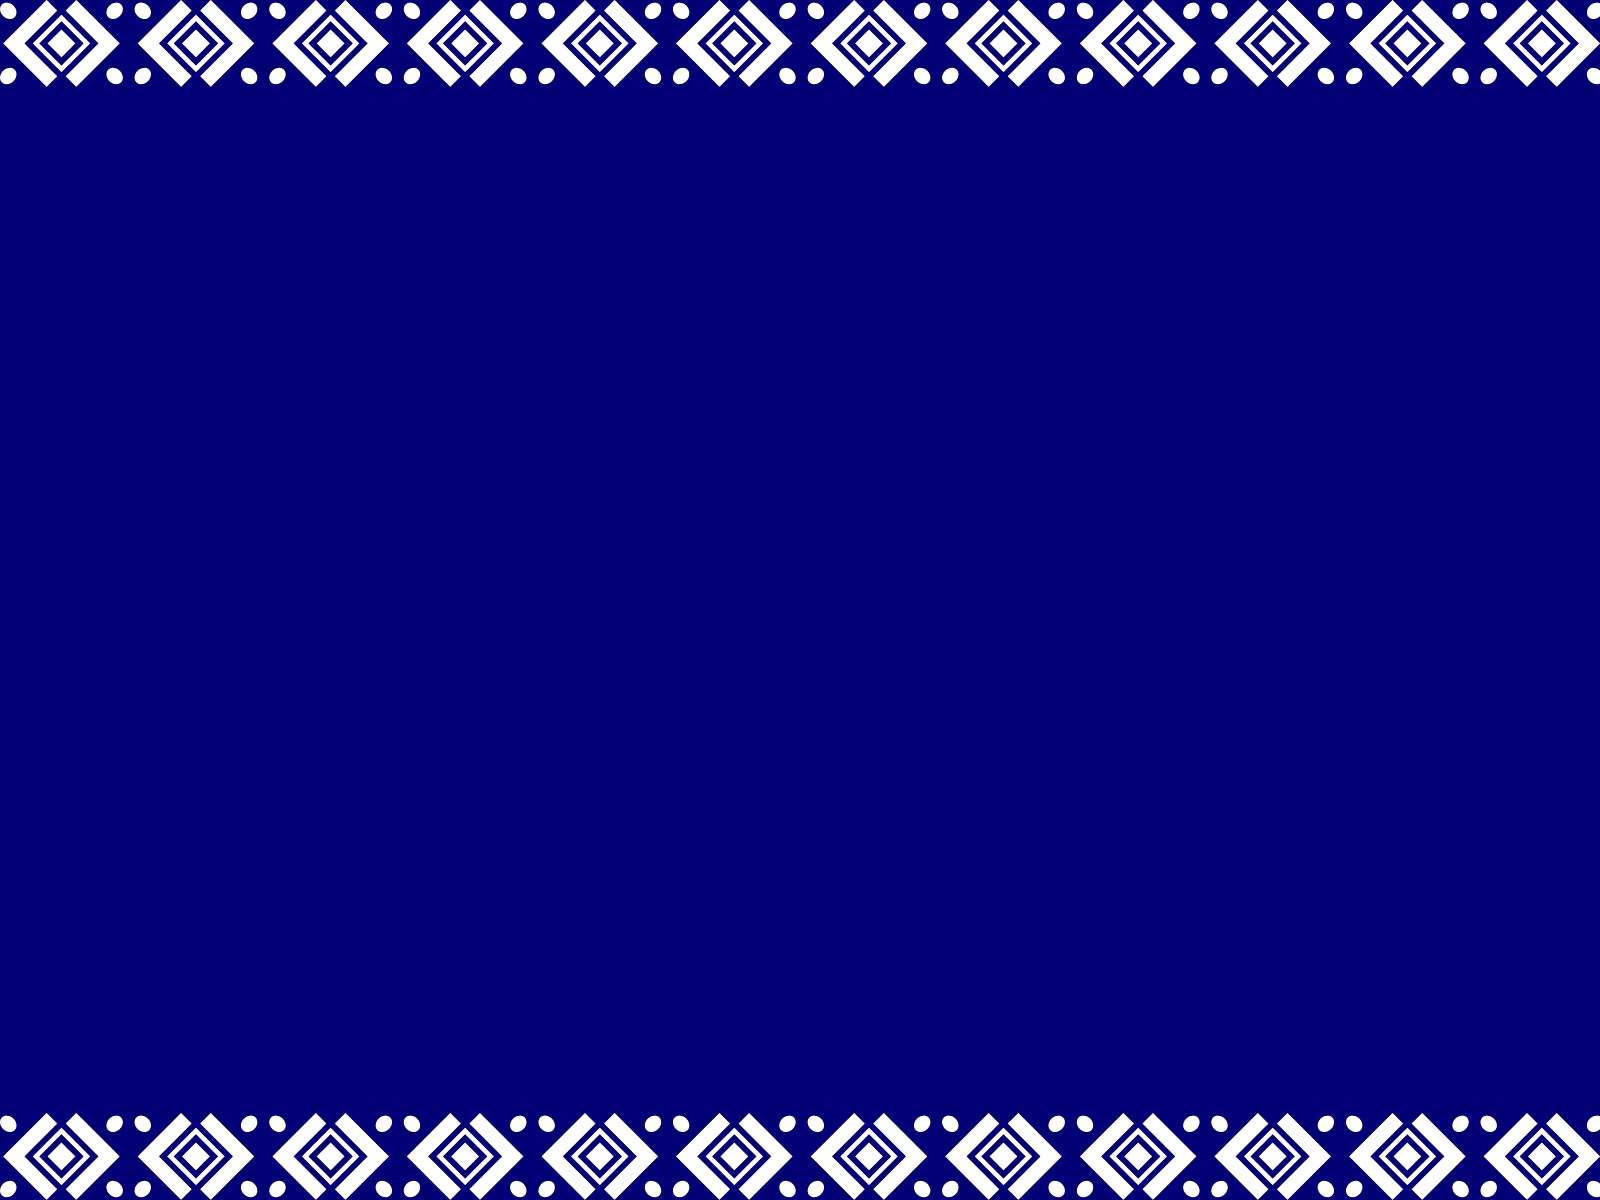 Plain Blue Wallpaper Border